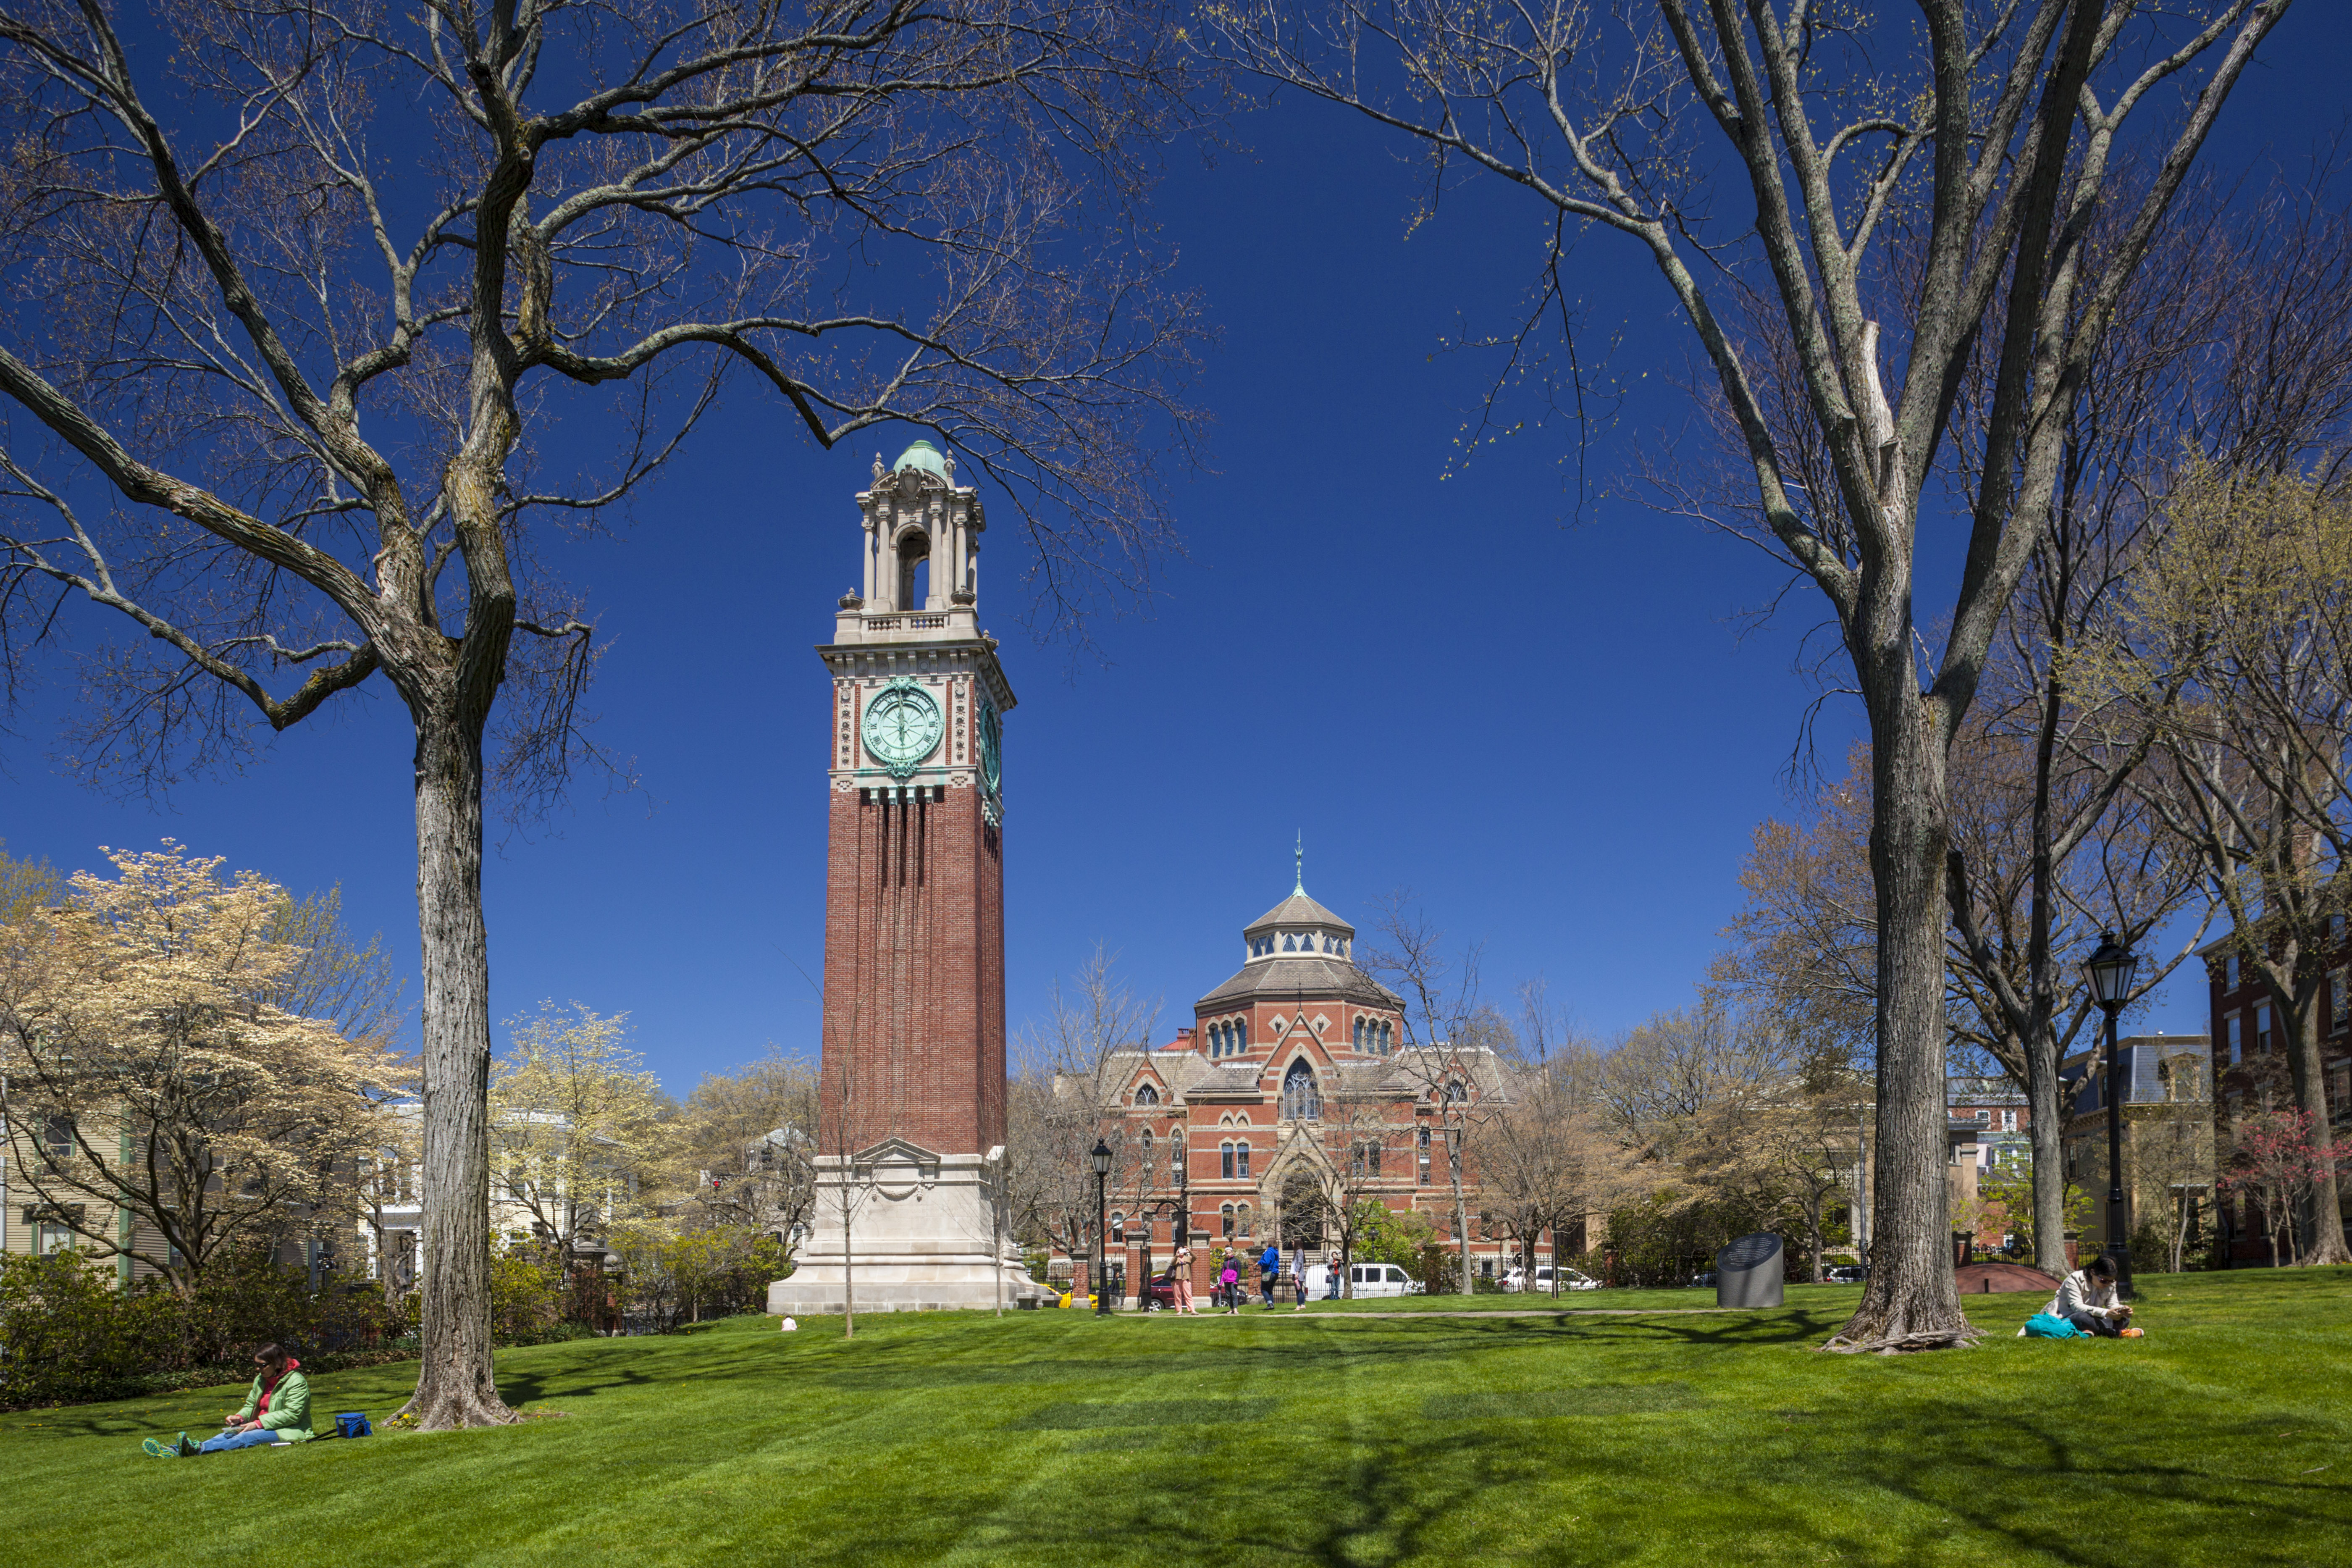 USA, Rhode Island, Providence, Brown University, ivy-league university campus and Carrie Tower